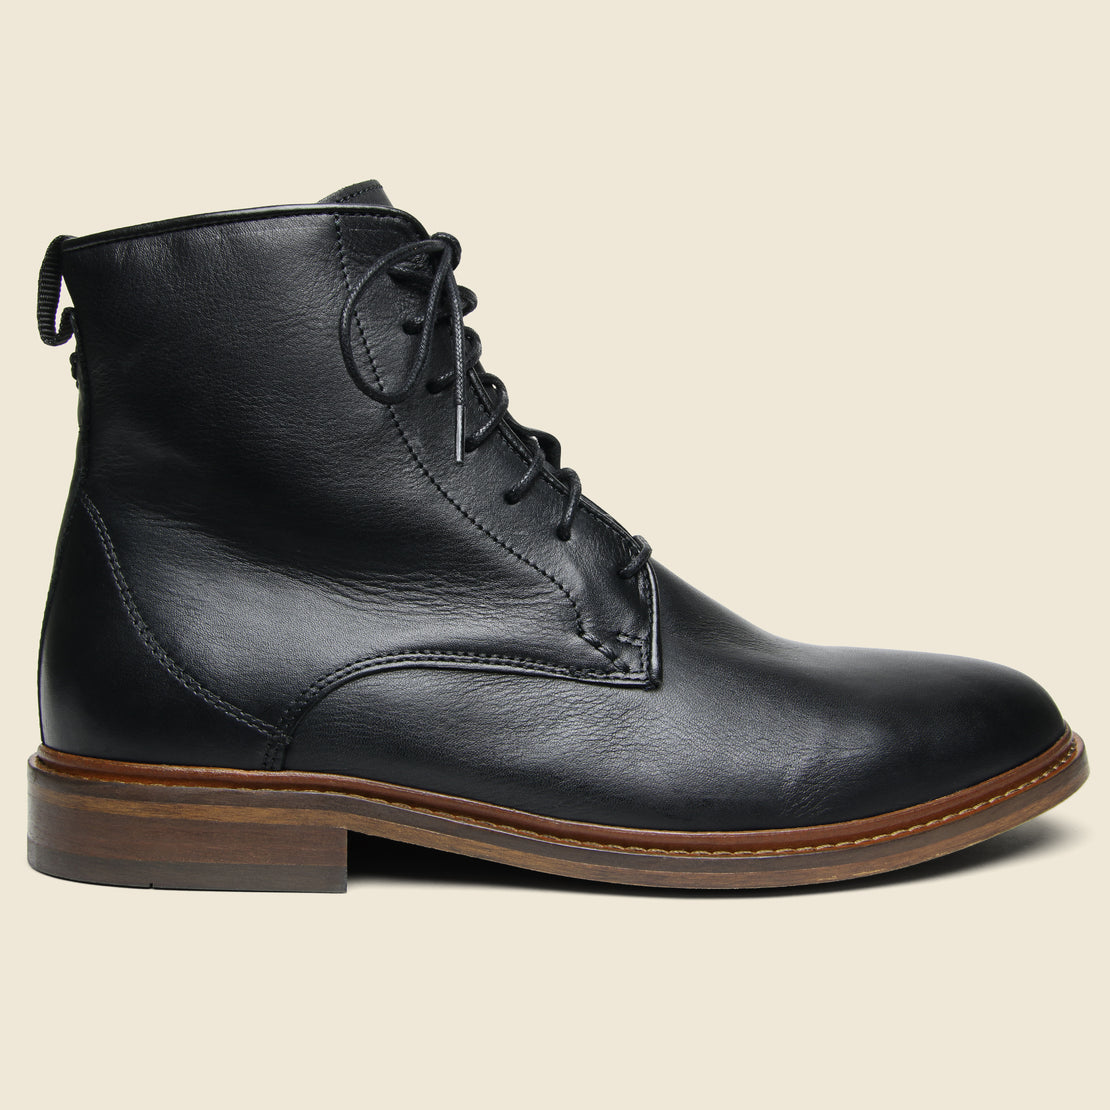 Shoe the Bear Ned Leather Lace-Up Boot - Black